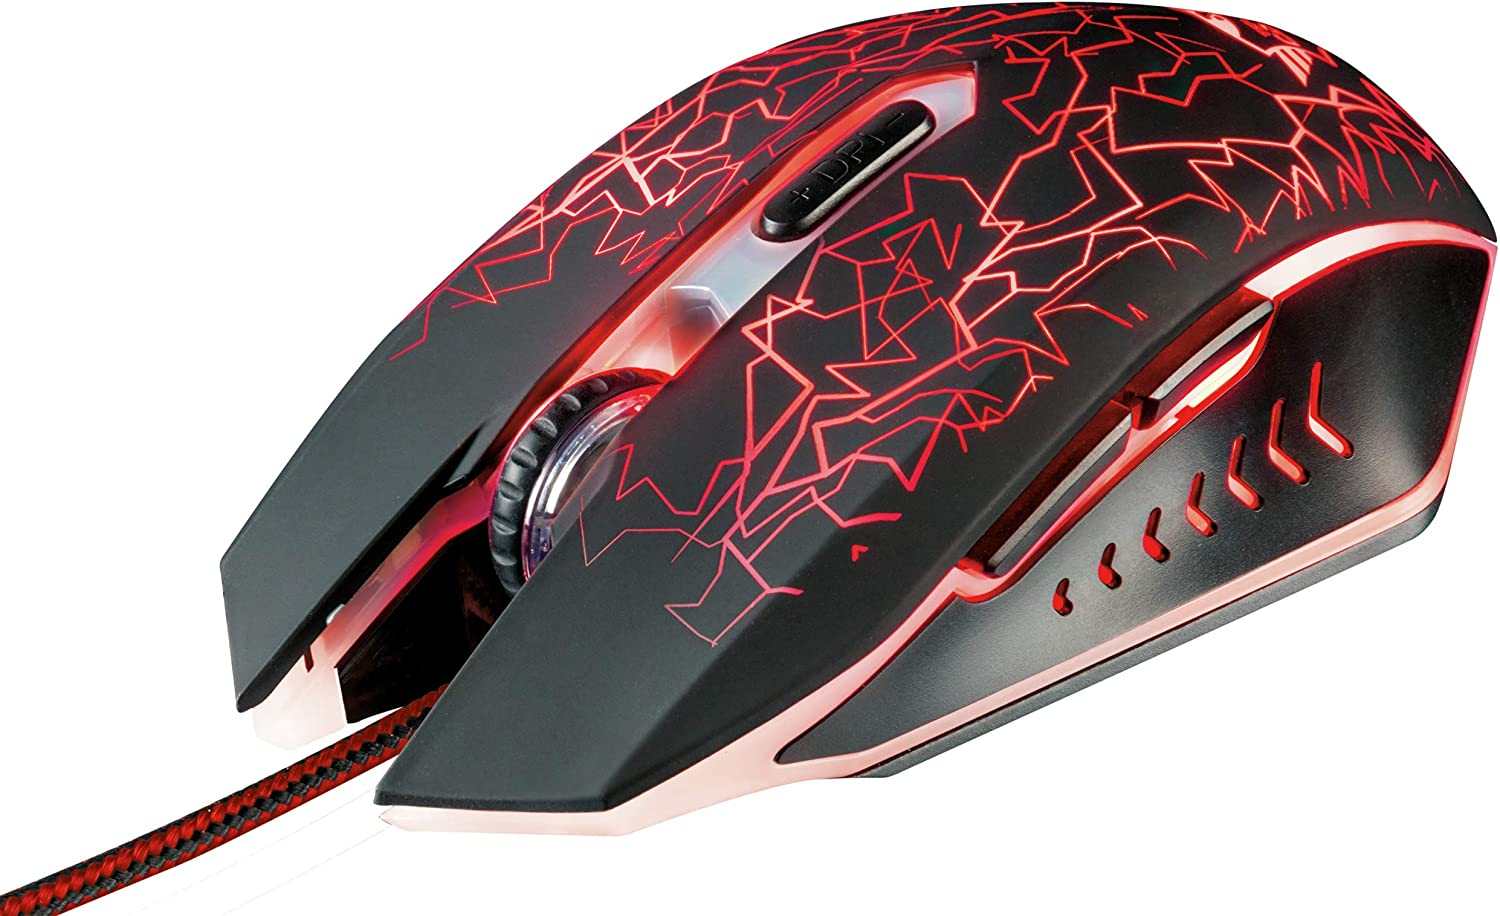 Trust GXT 105 Izza Illuminated Gaming Mouse 6 Responsive Buttons 800-2400 DPI